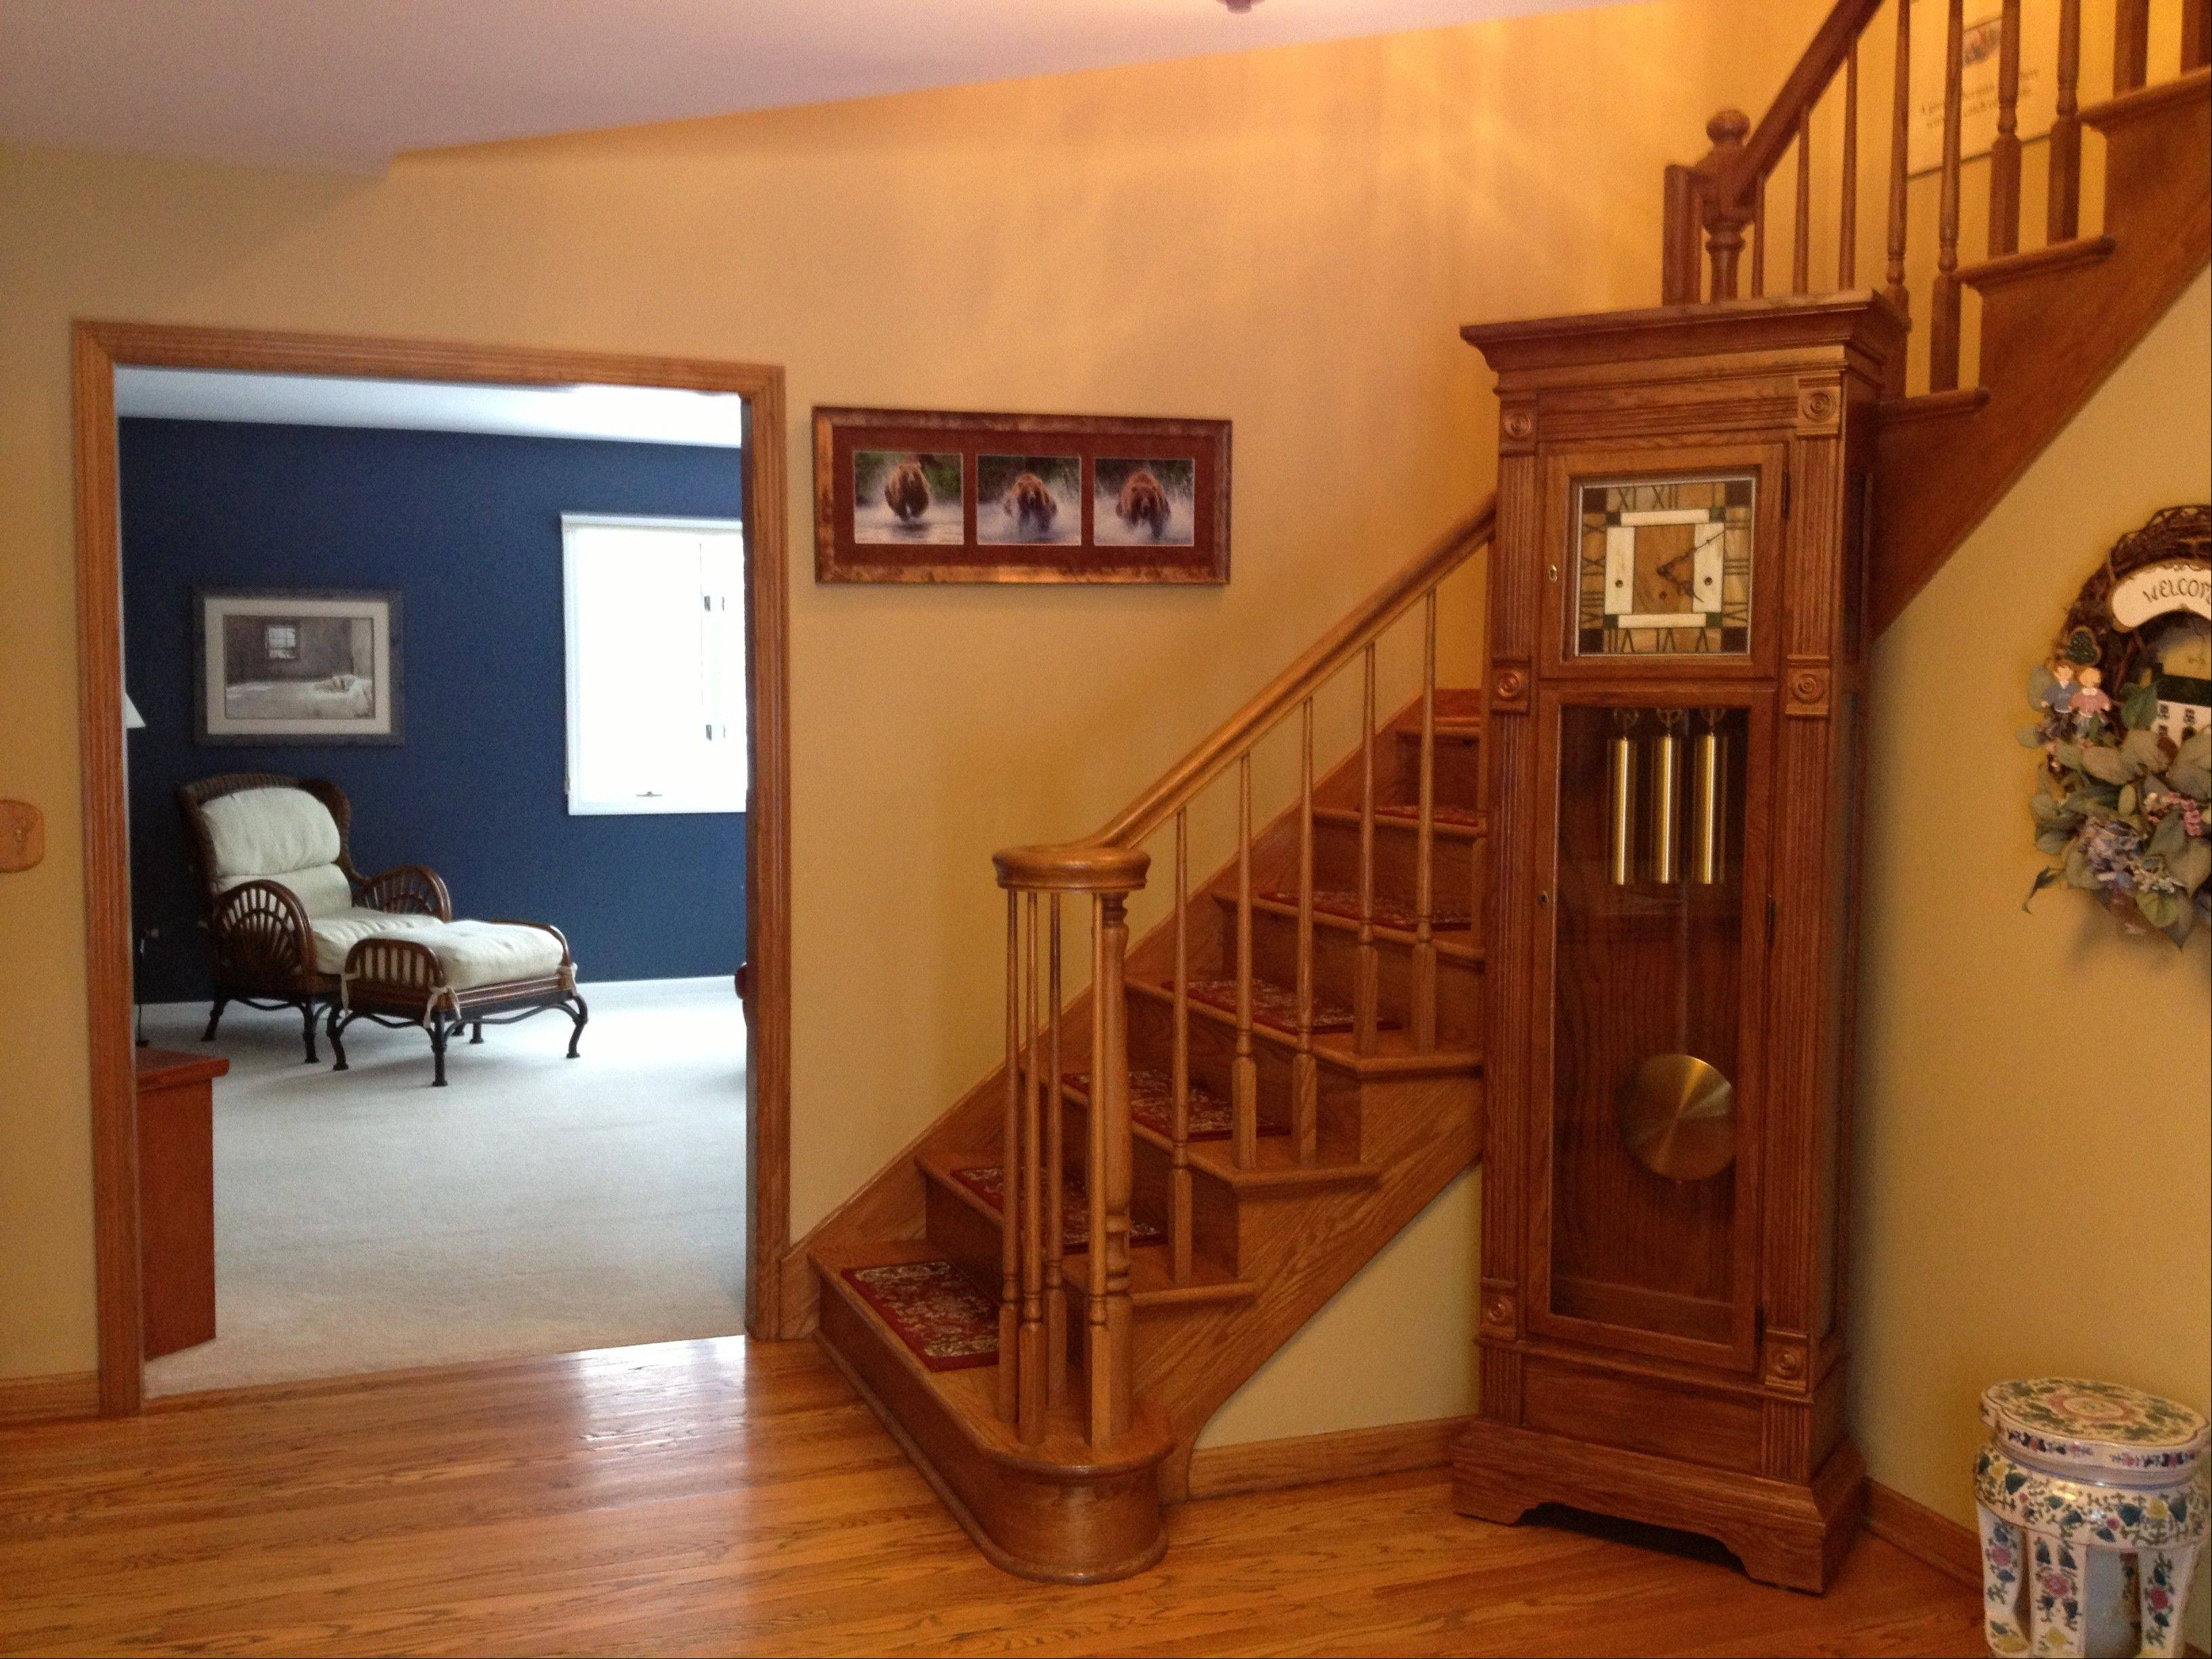 Stairs in the two-story foyer lead up to the second floor and a newly finished master suite.